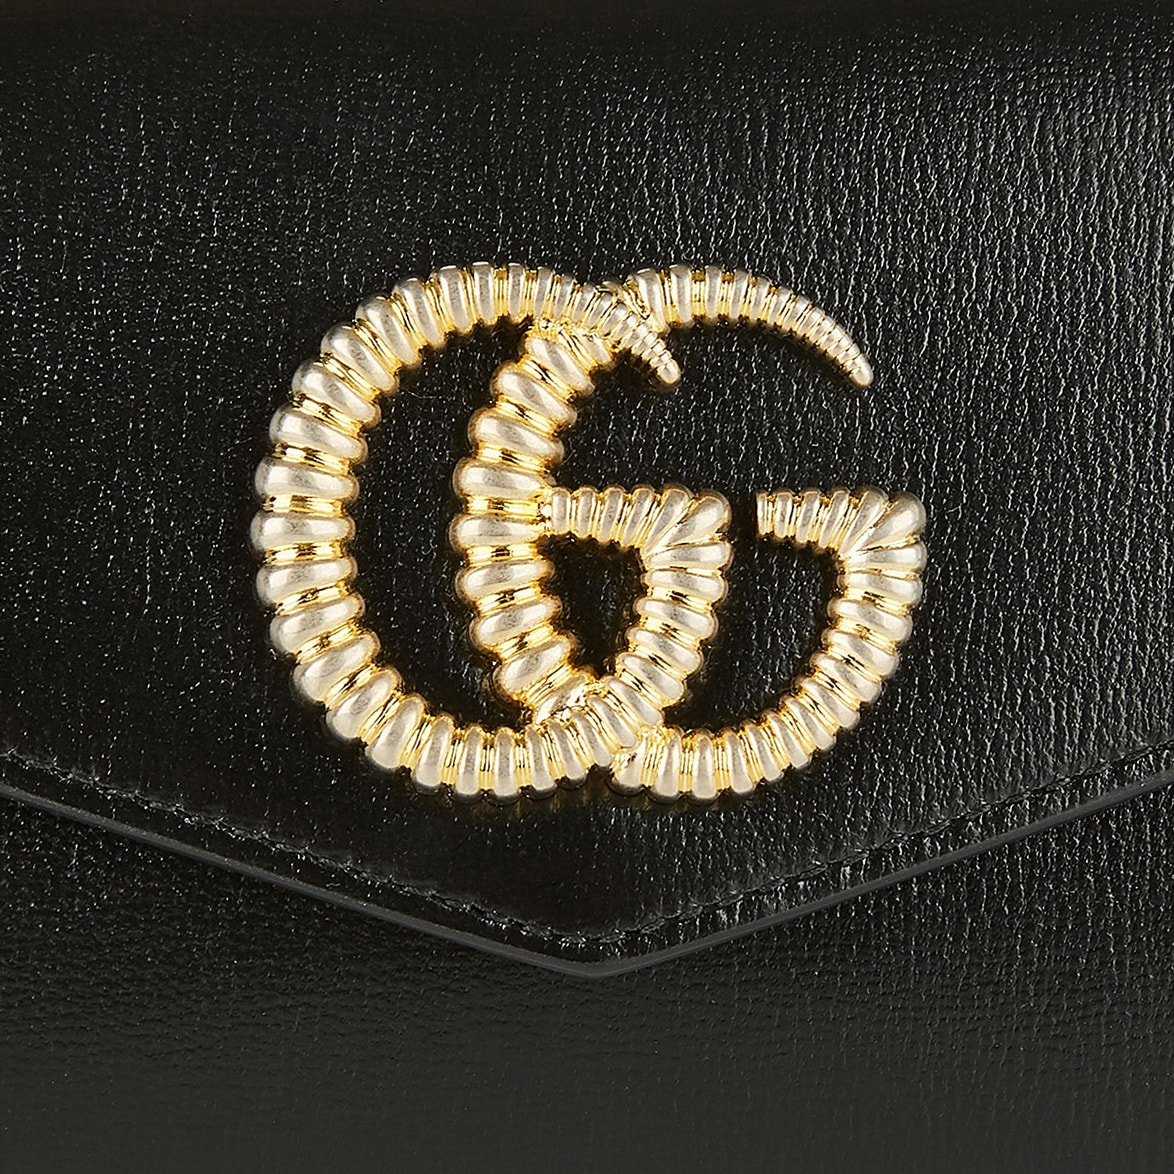 Broadway GG leather clutch